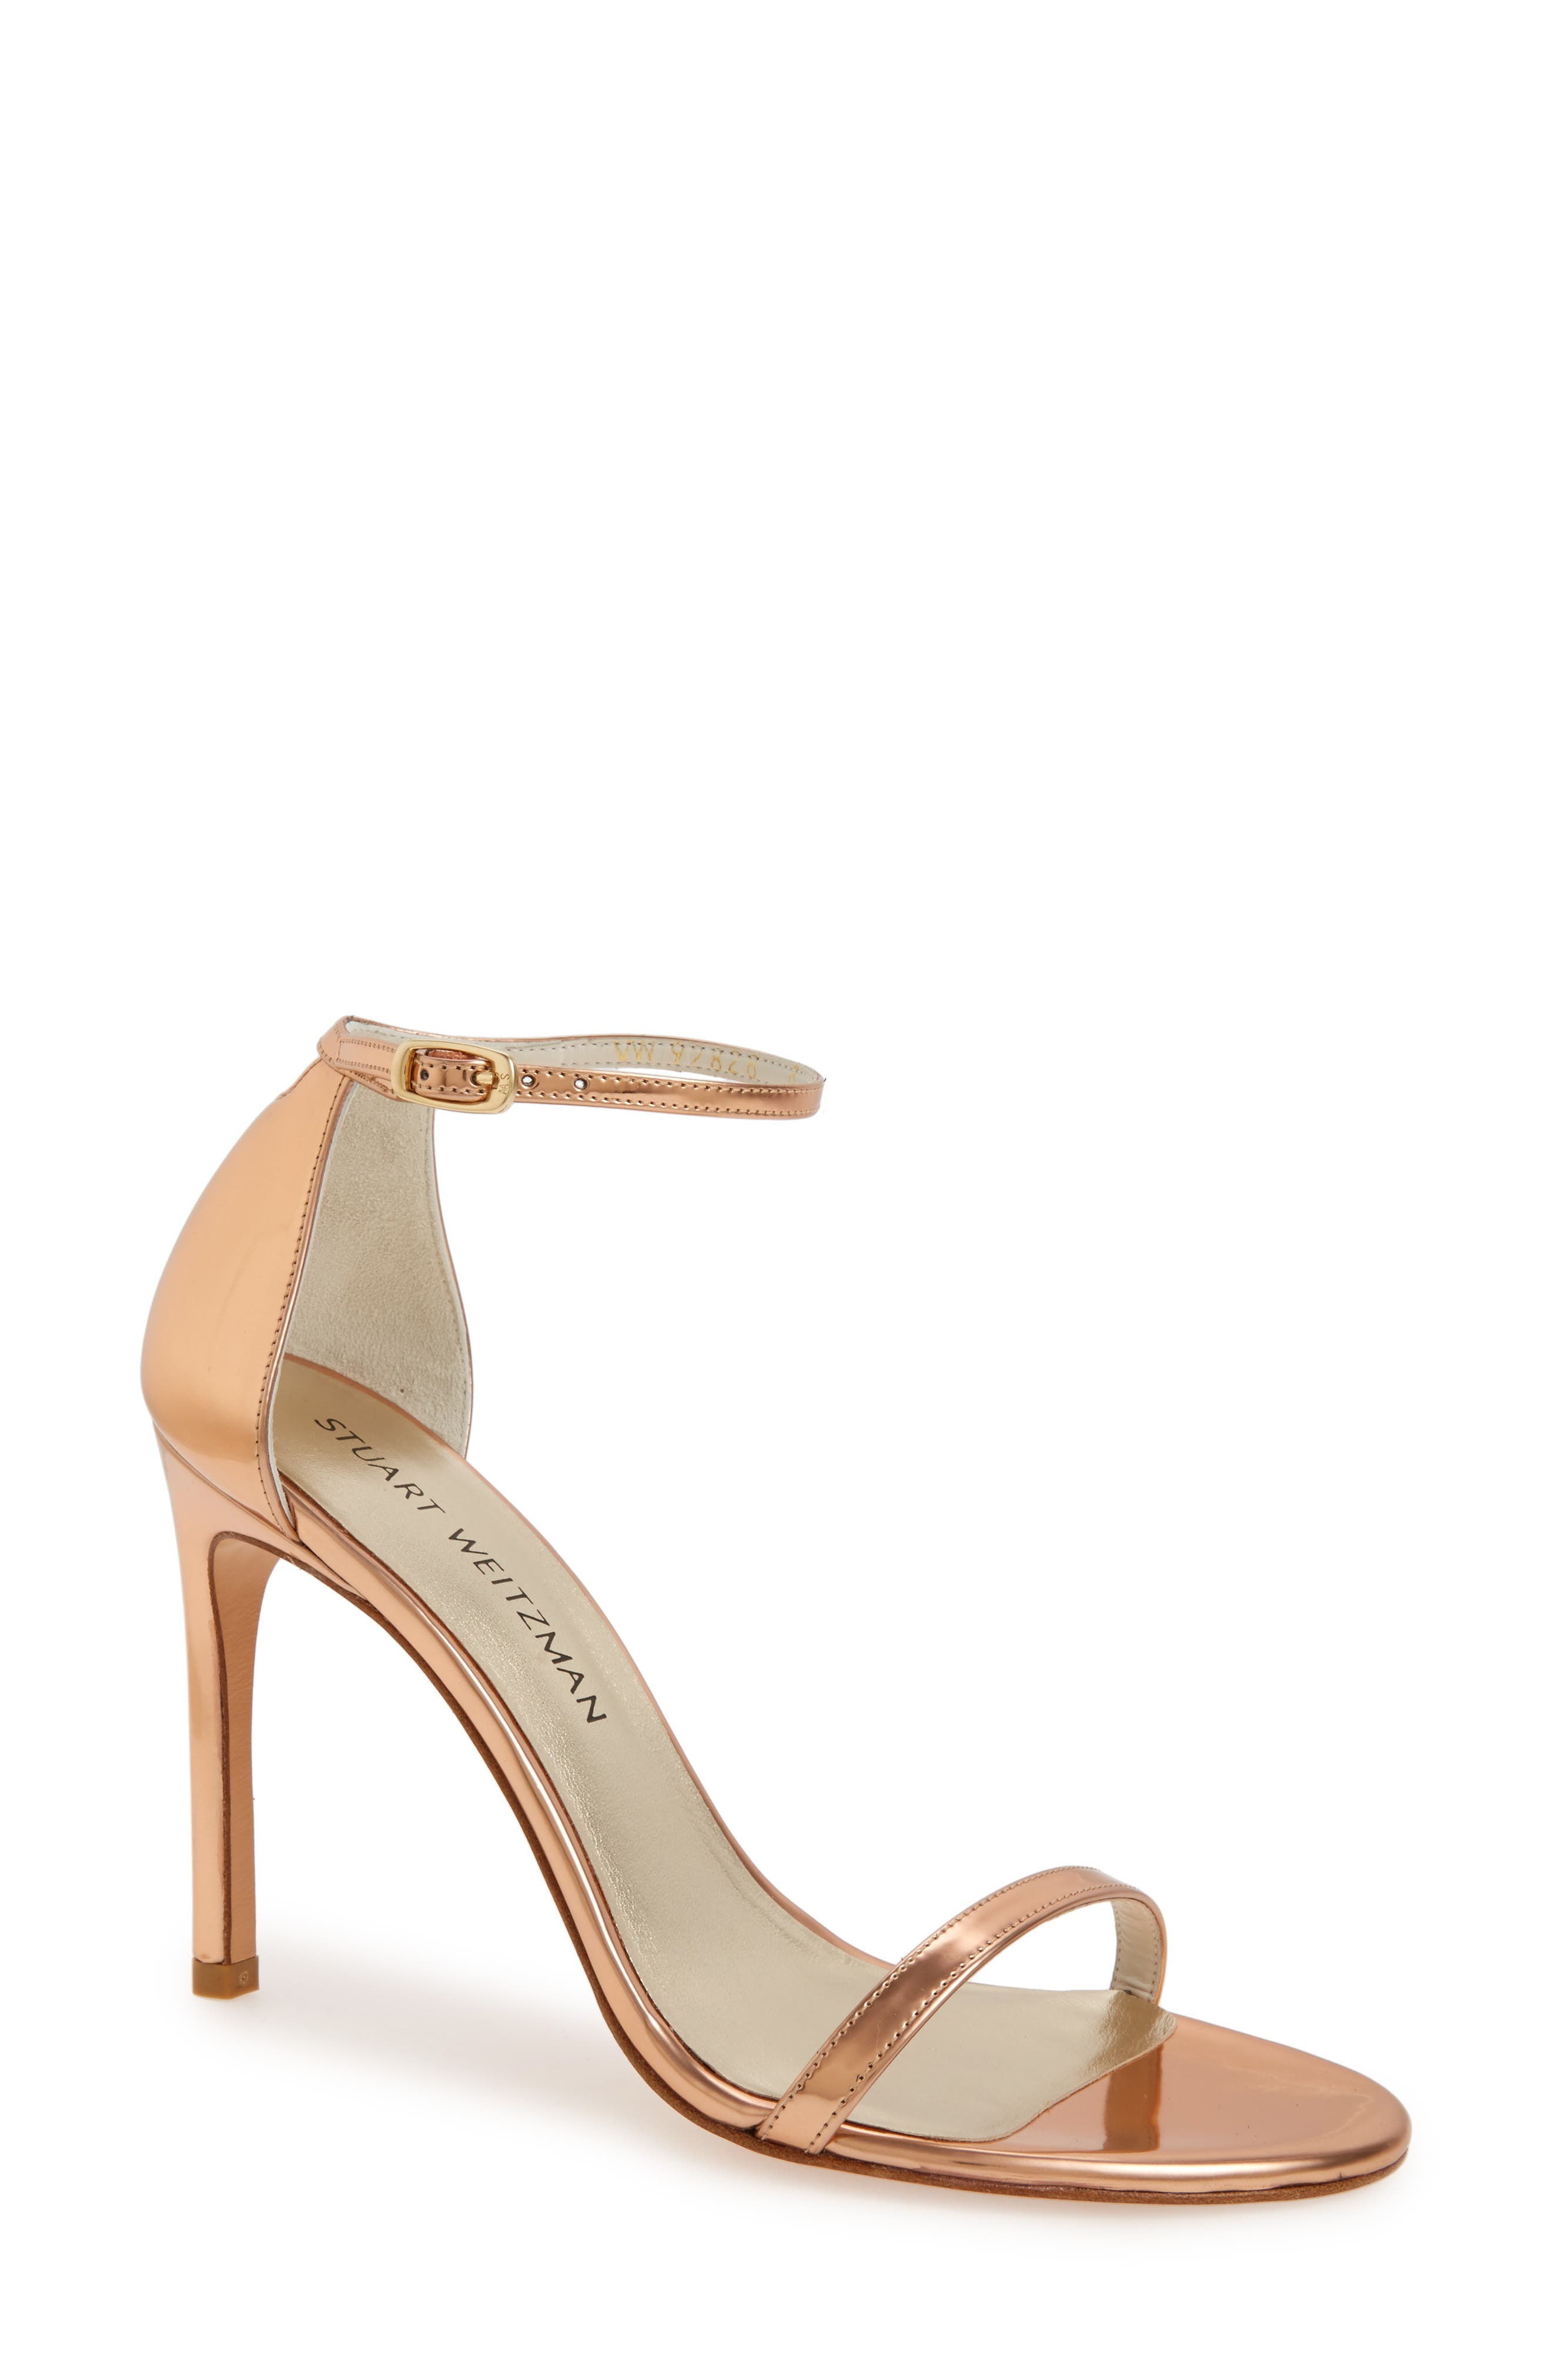 Nudistsong Ankle Strap Sandal,                             Main thumbnail 22, color,